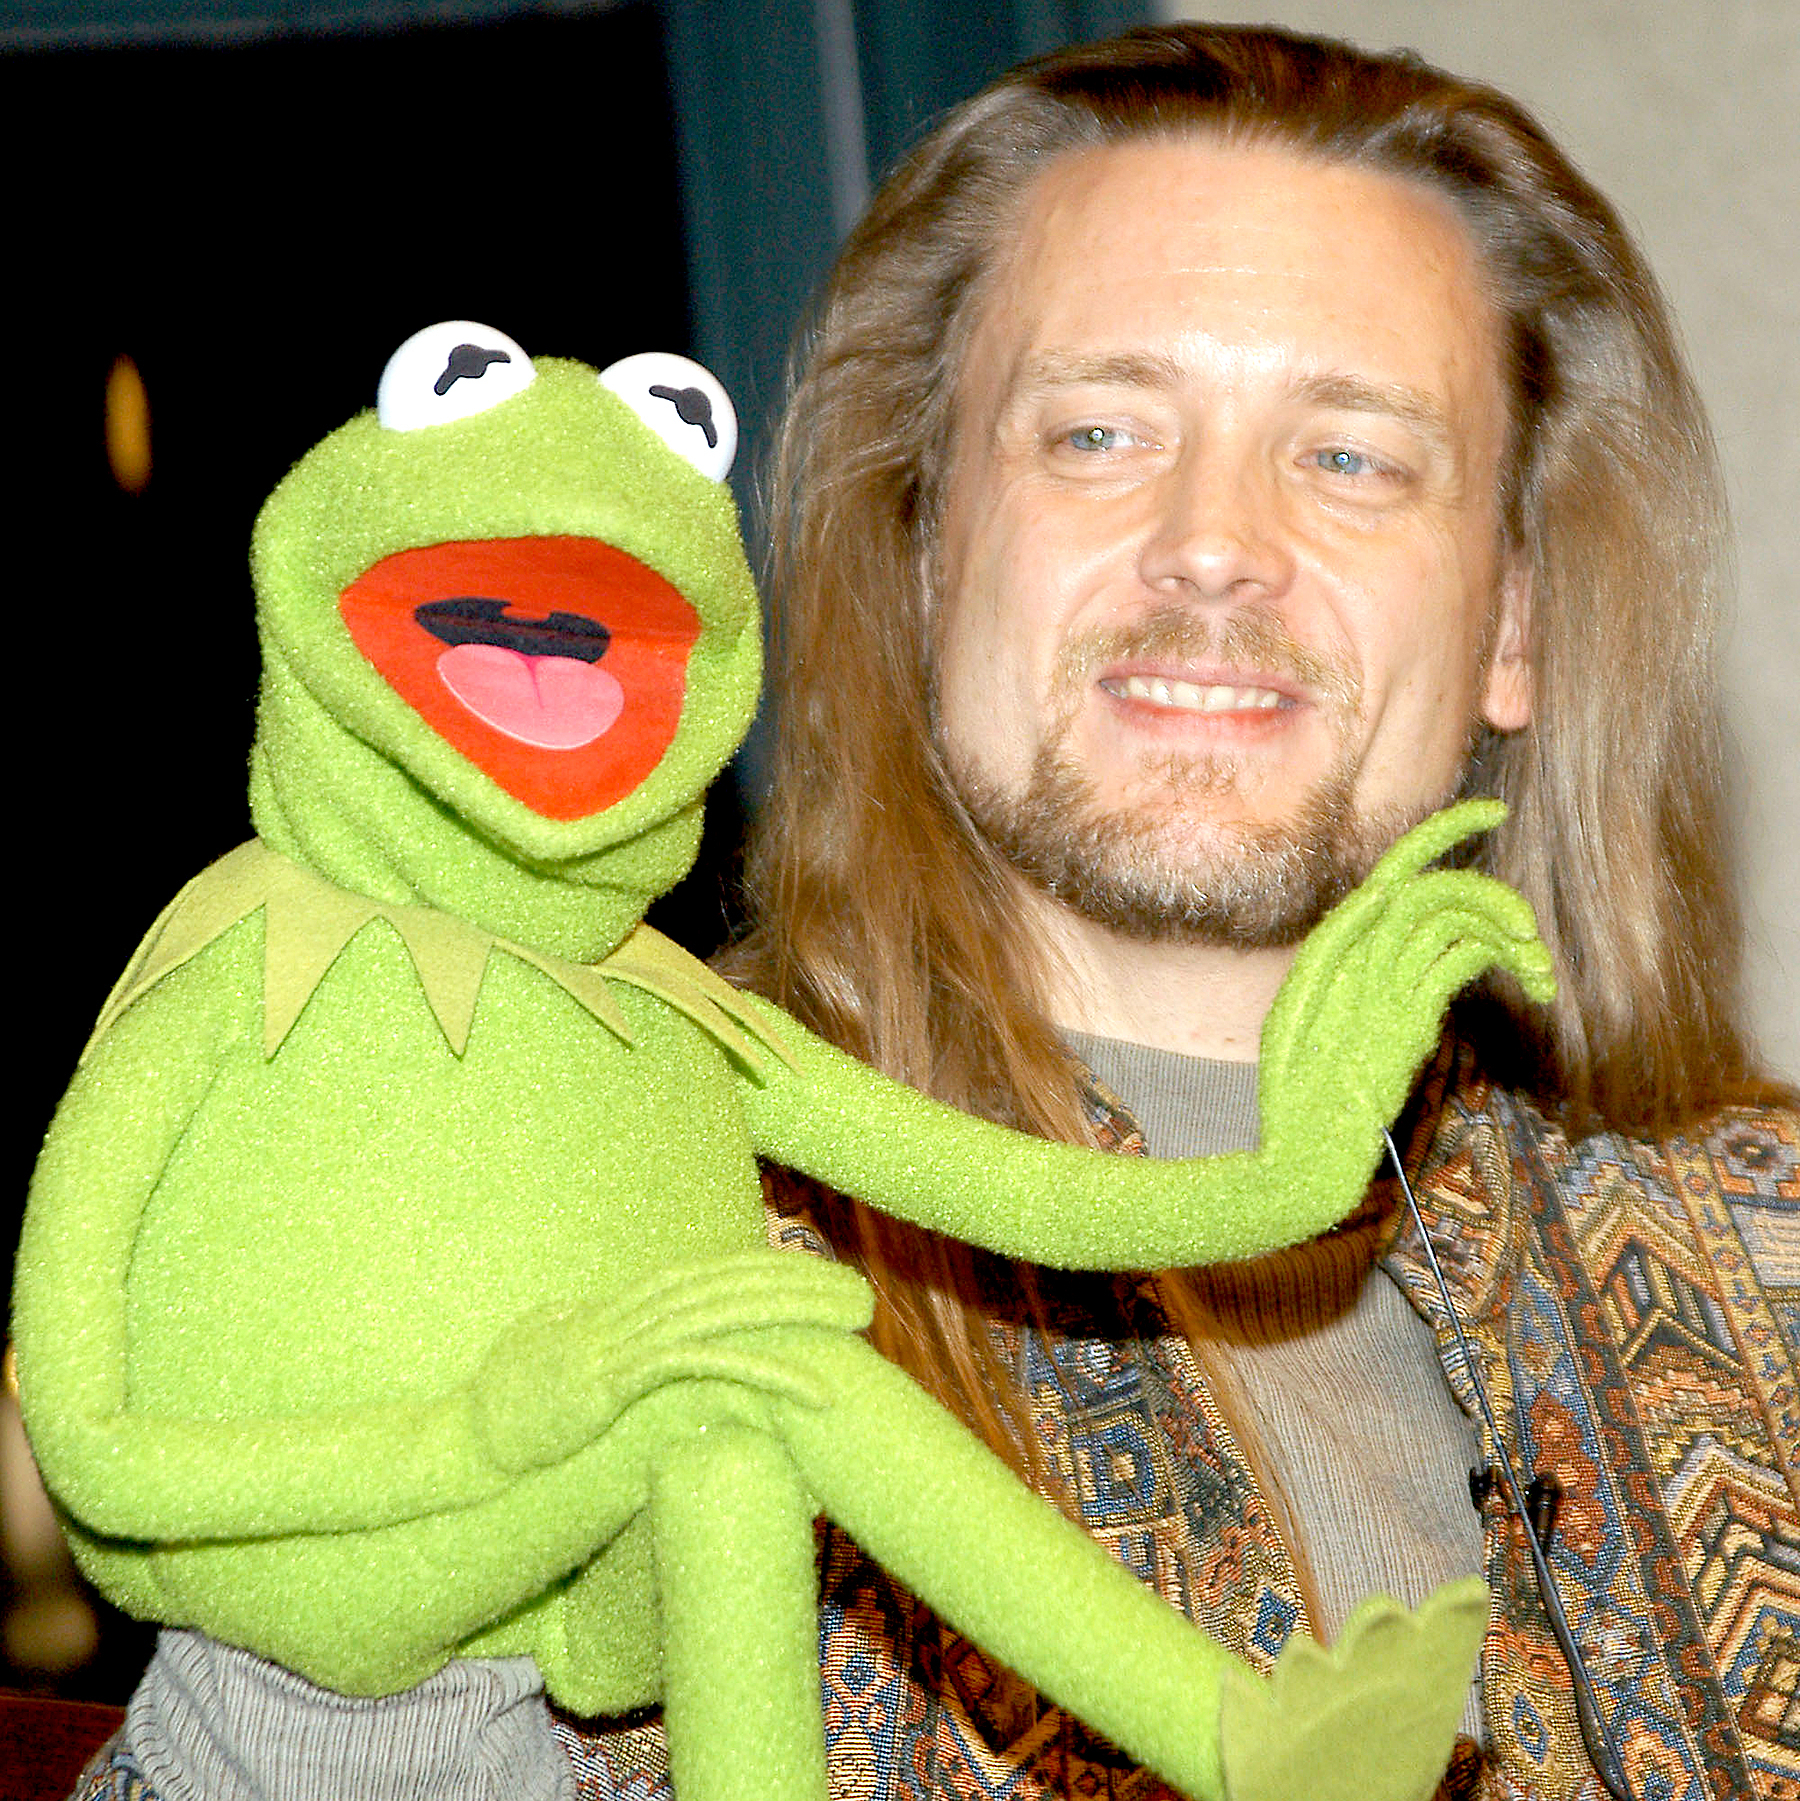 Muppet Kermit the Frog and his operator Steve Whitmire take questions from the audience November 14, 2003, at Barnes & Noble Union Square in New York City.